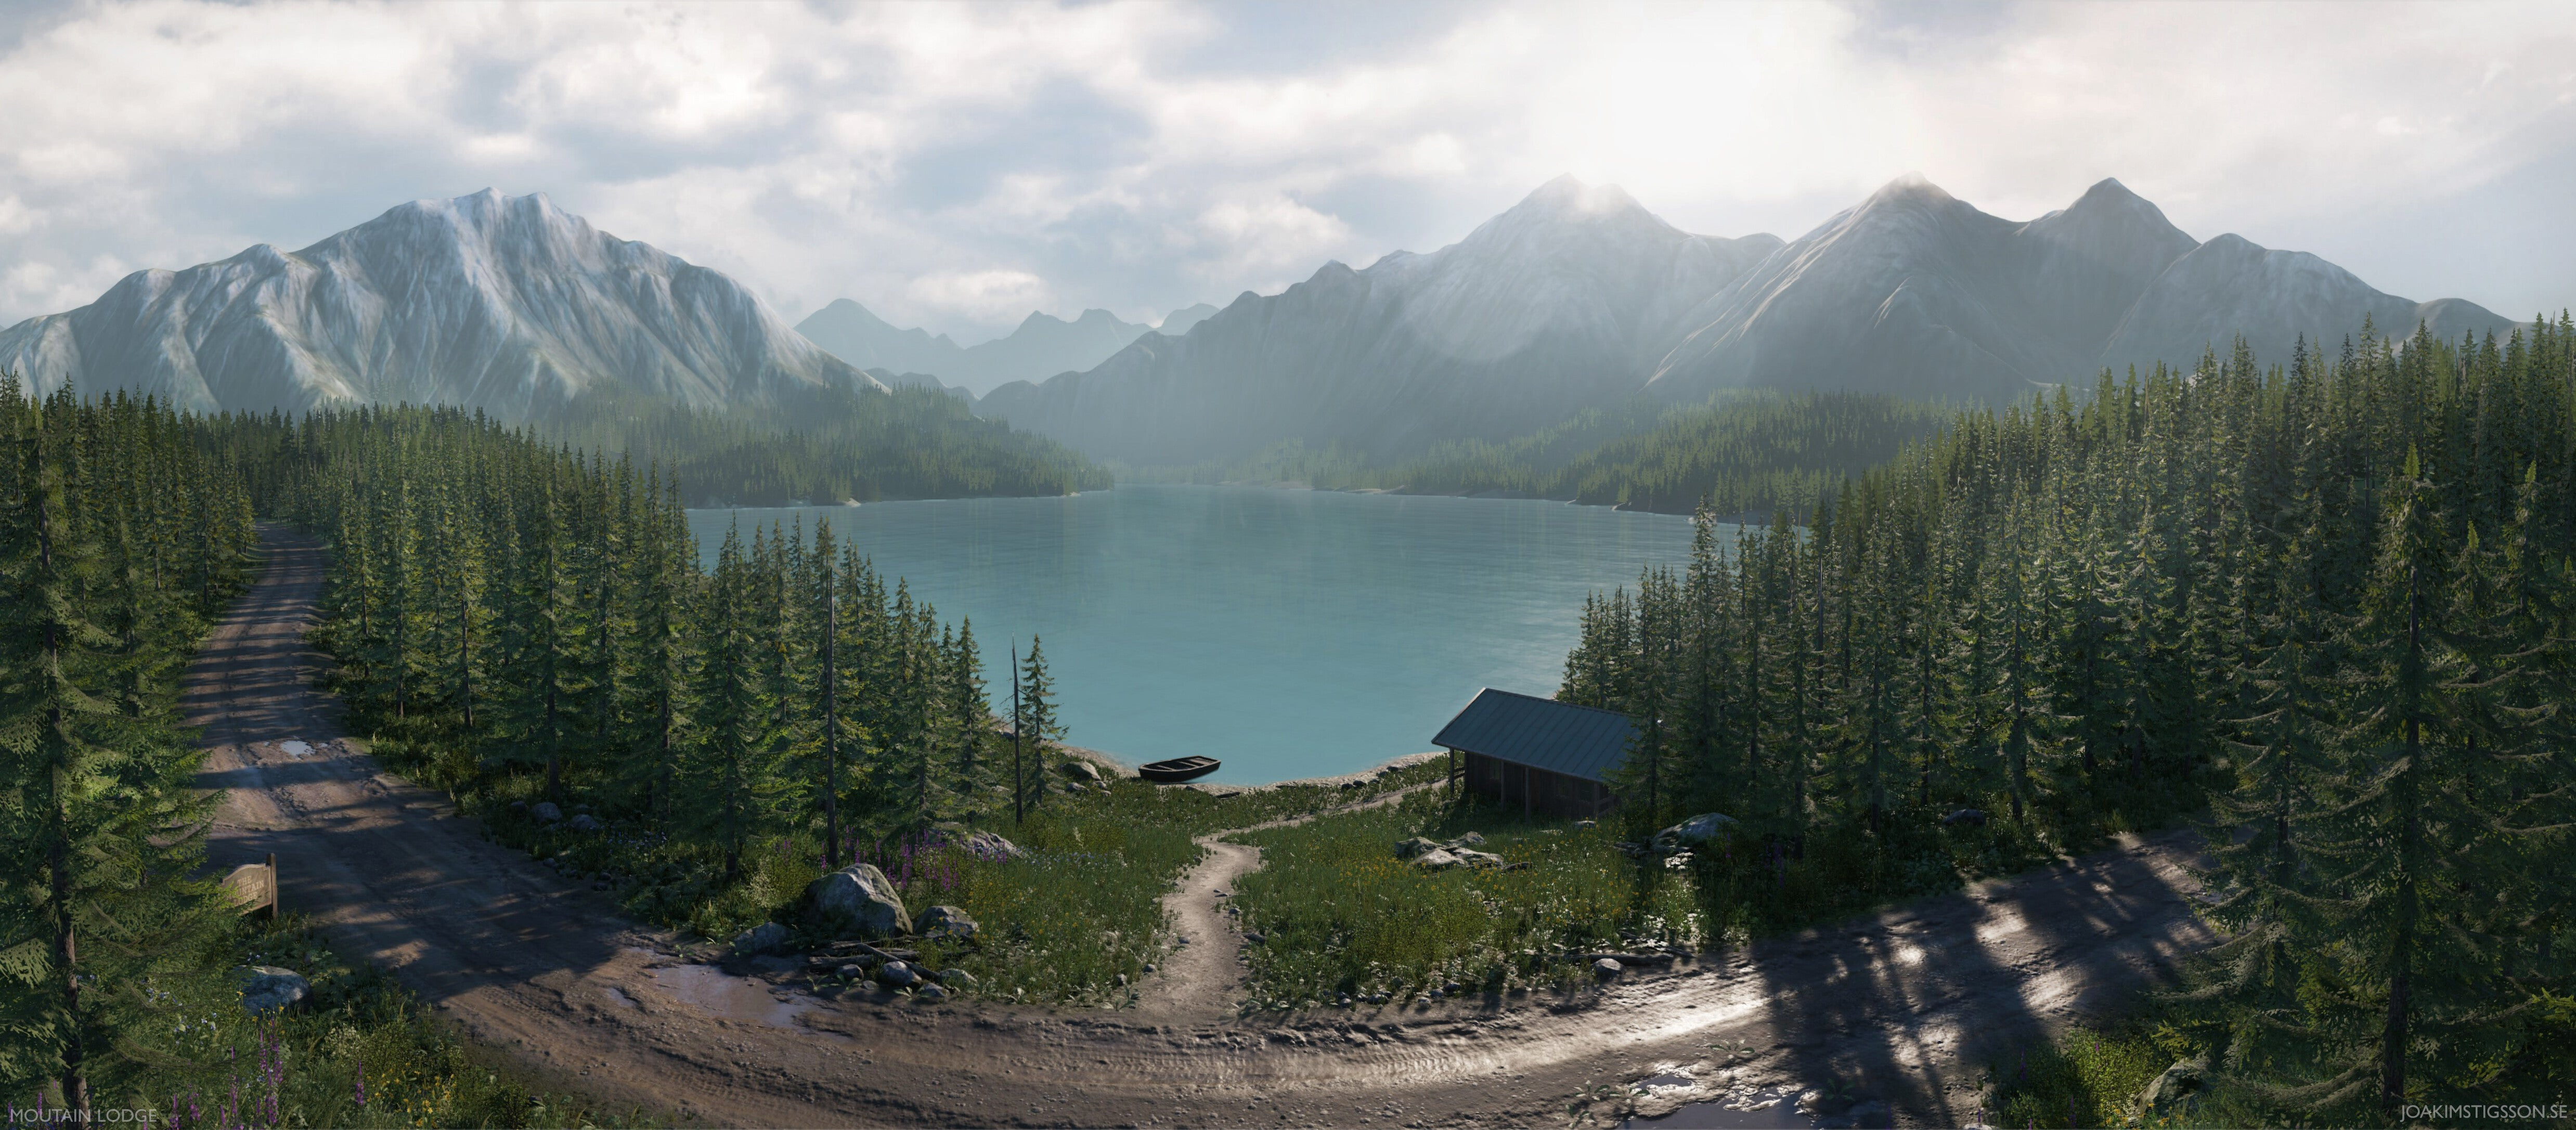 Custom CryEngine 3 Environments Are The Best